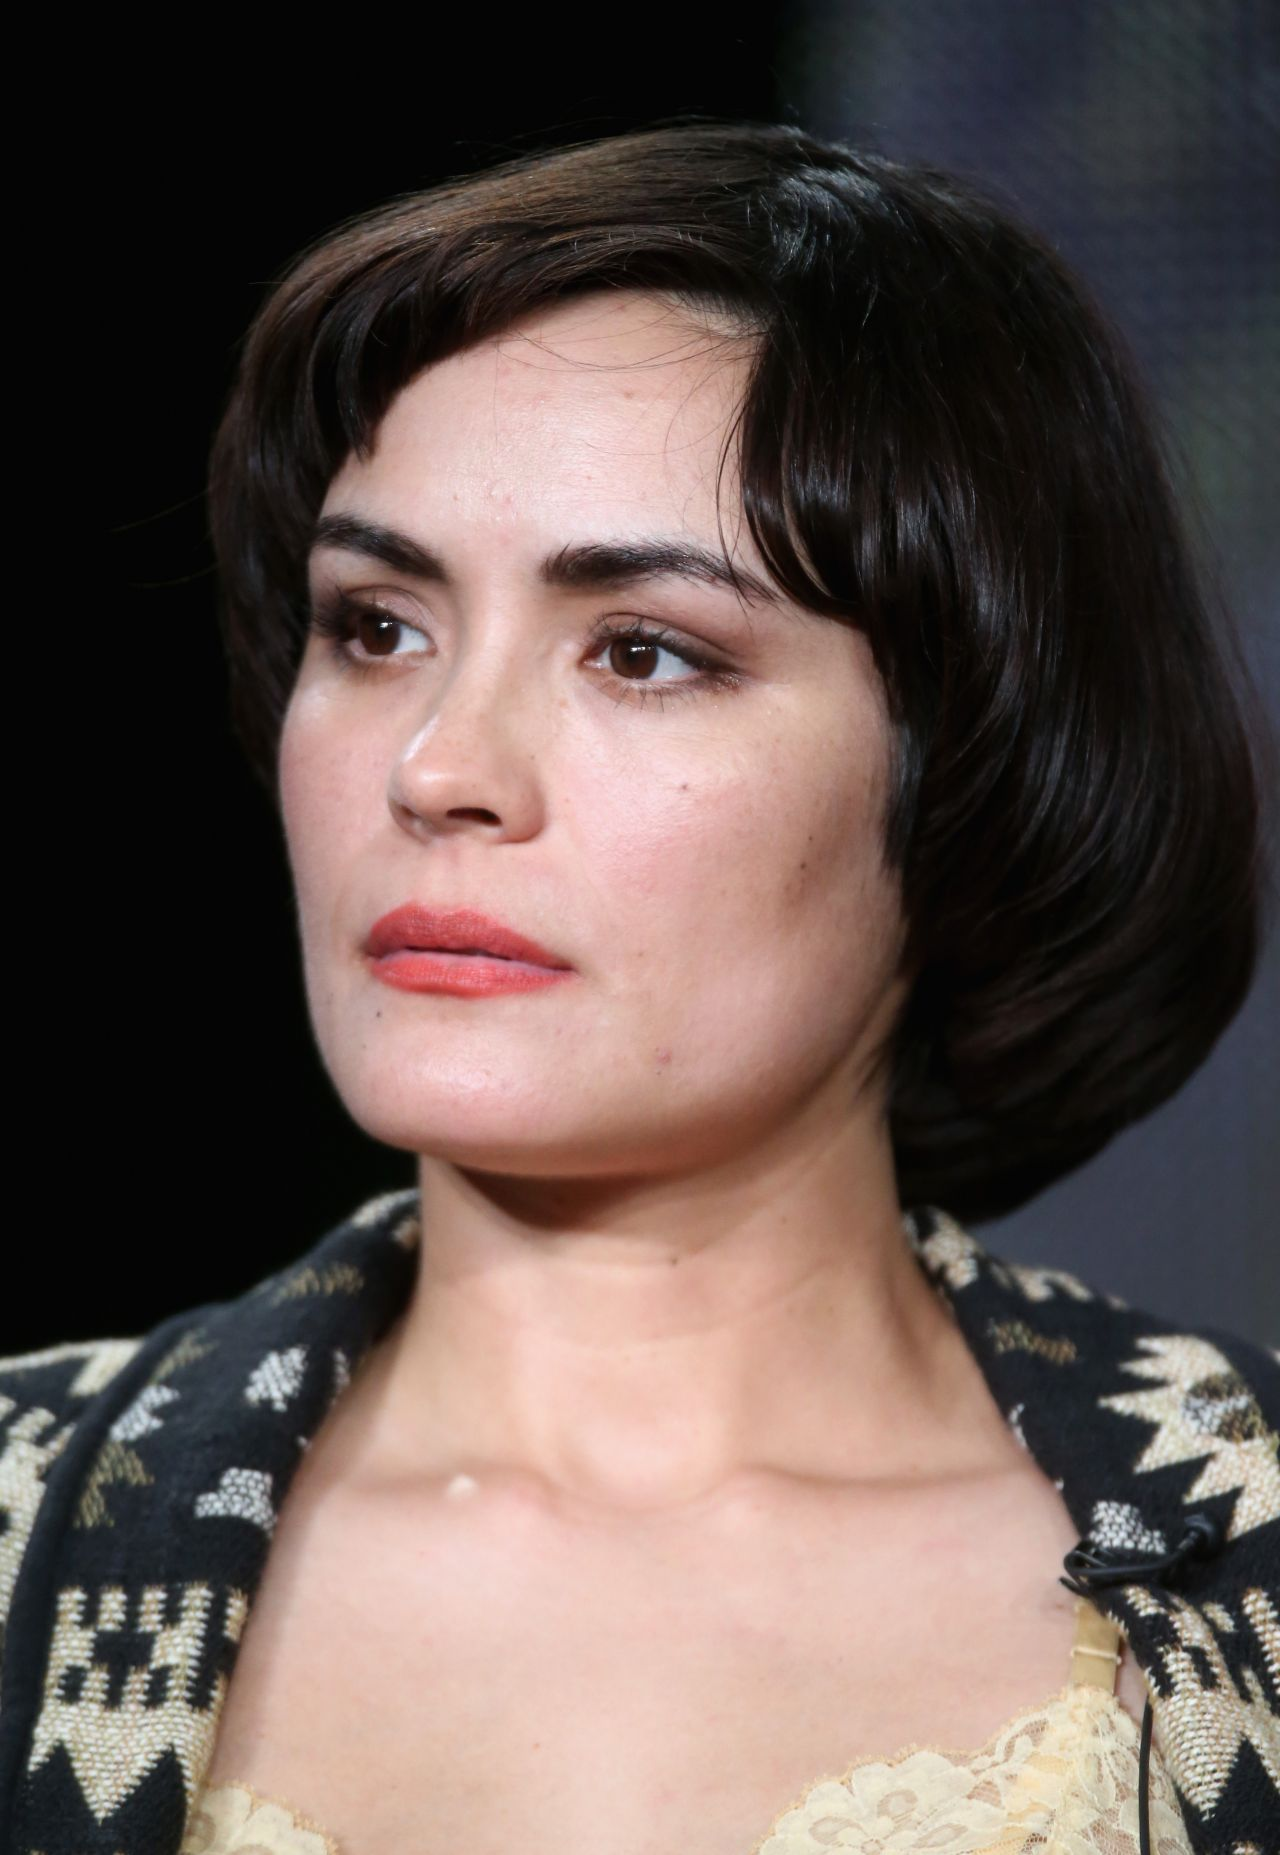 Shannyn sossamon wayward pines panel tca press tour in